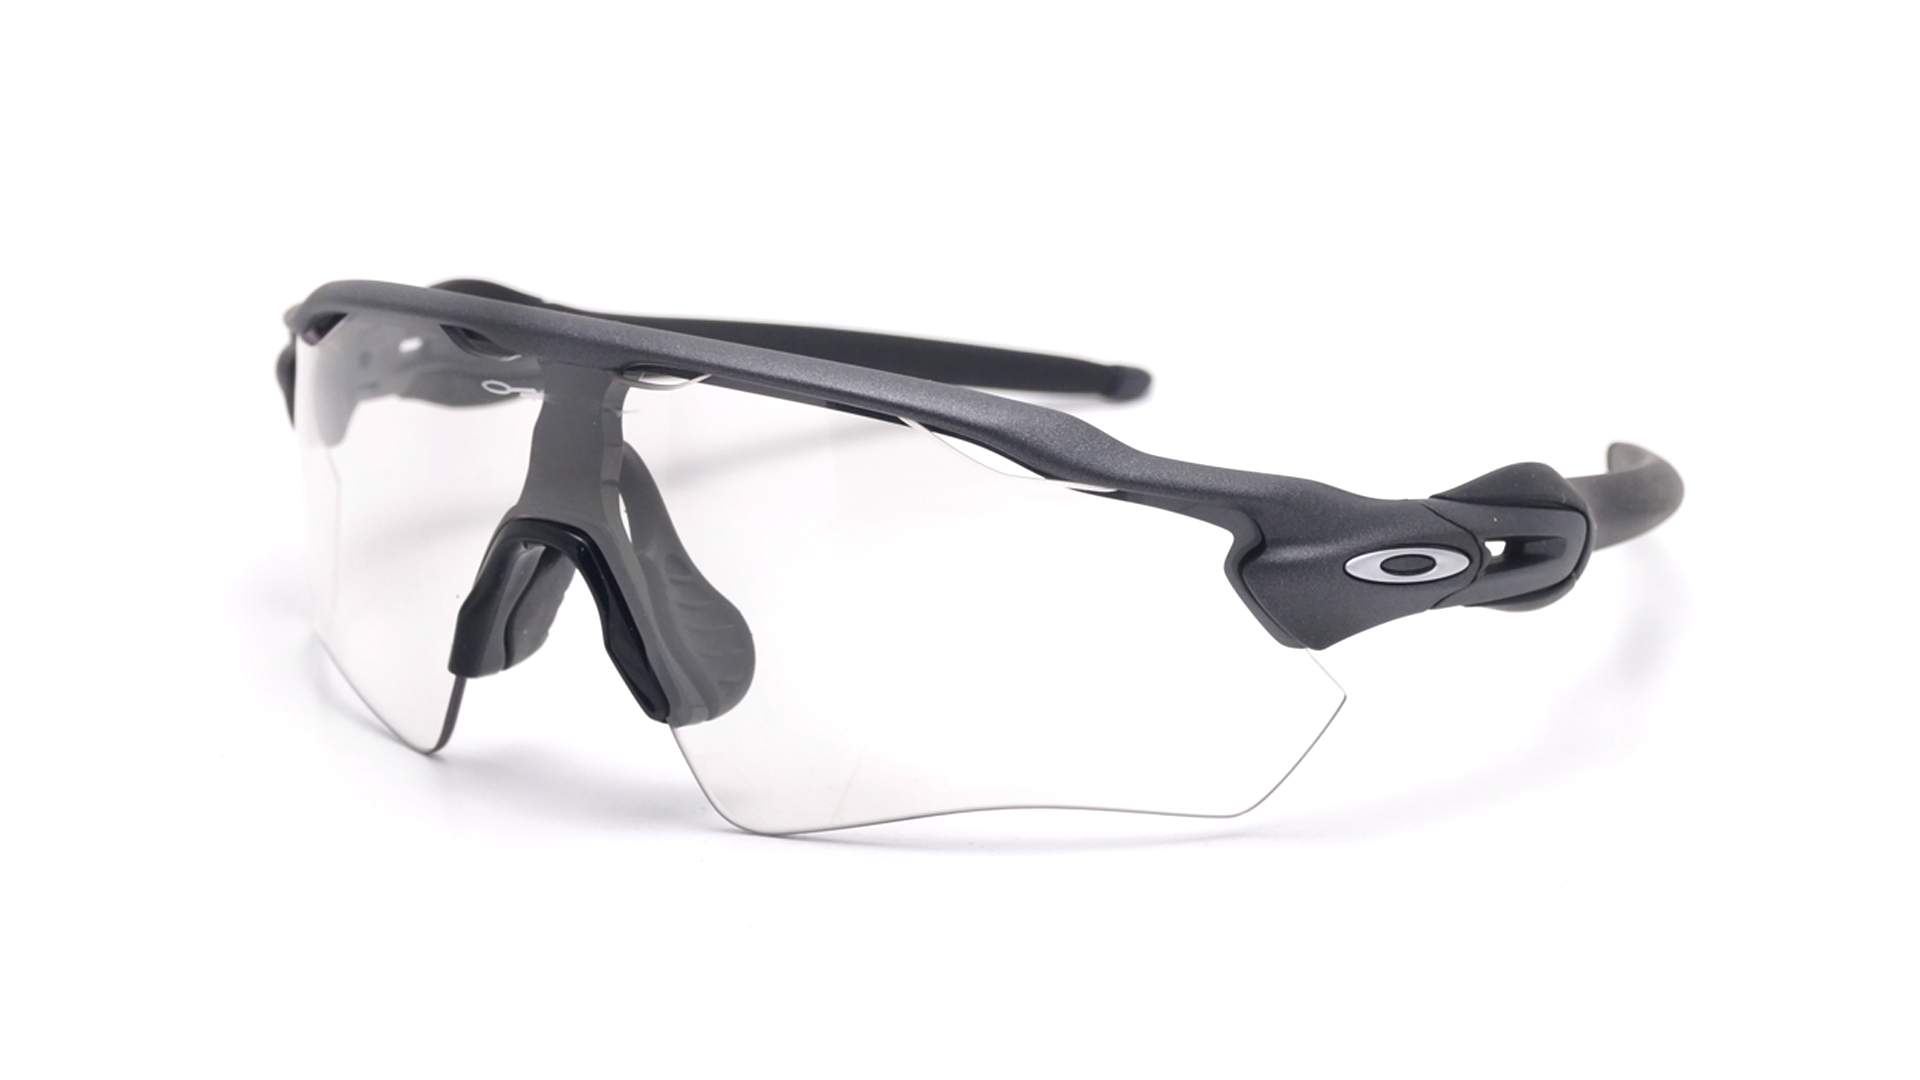 9de1635643 Sunglasses Oakley Radar ev path Grey Matte OO9208 13 155-15 Large  Photochromic